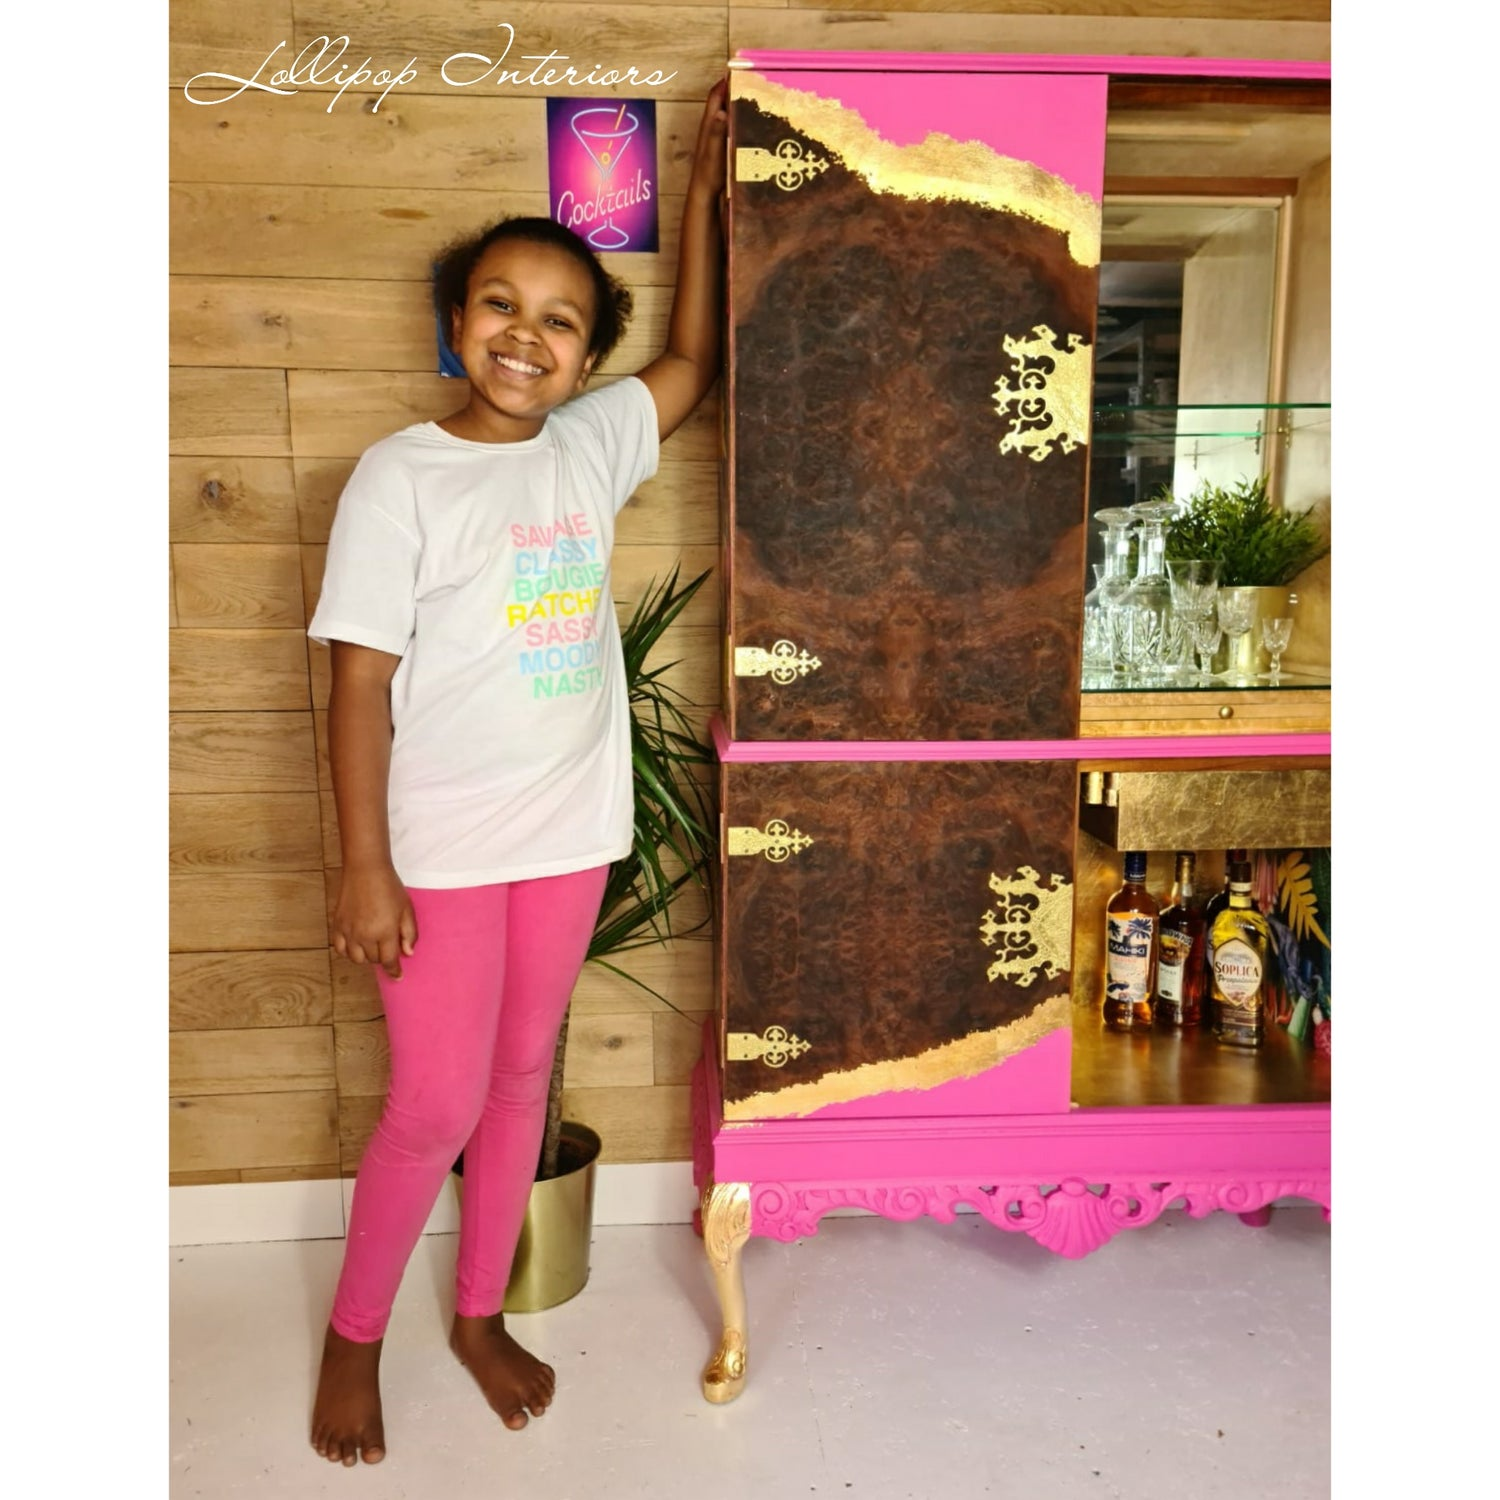 Image of Pink cocktail cabinet